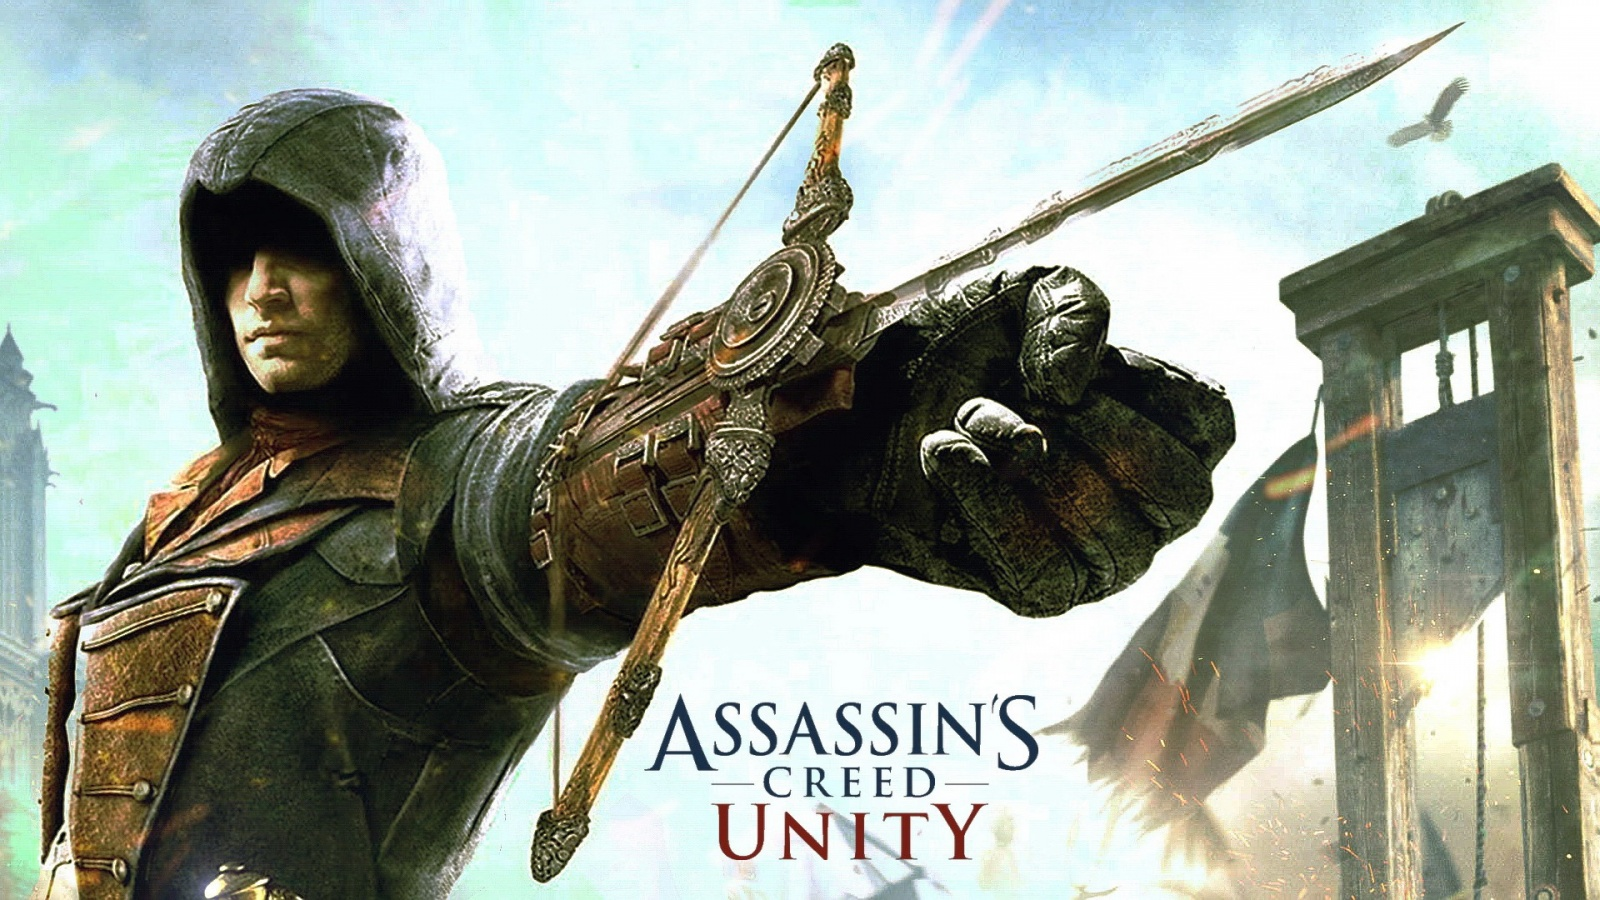 Assassins Creed Wallpaper Free Download